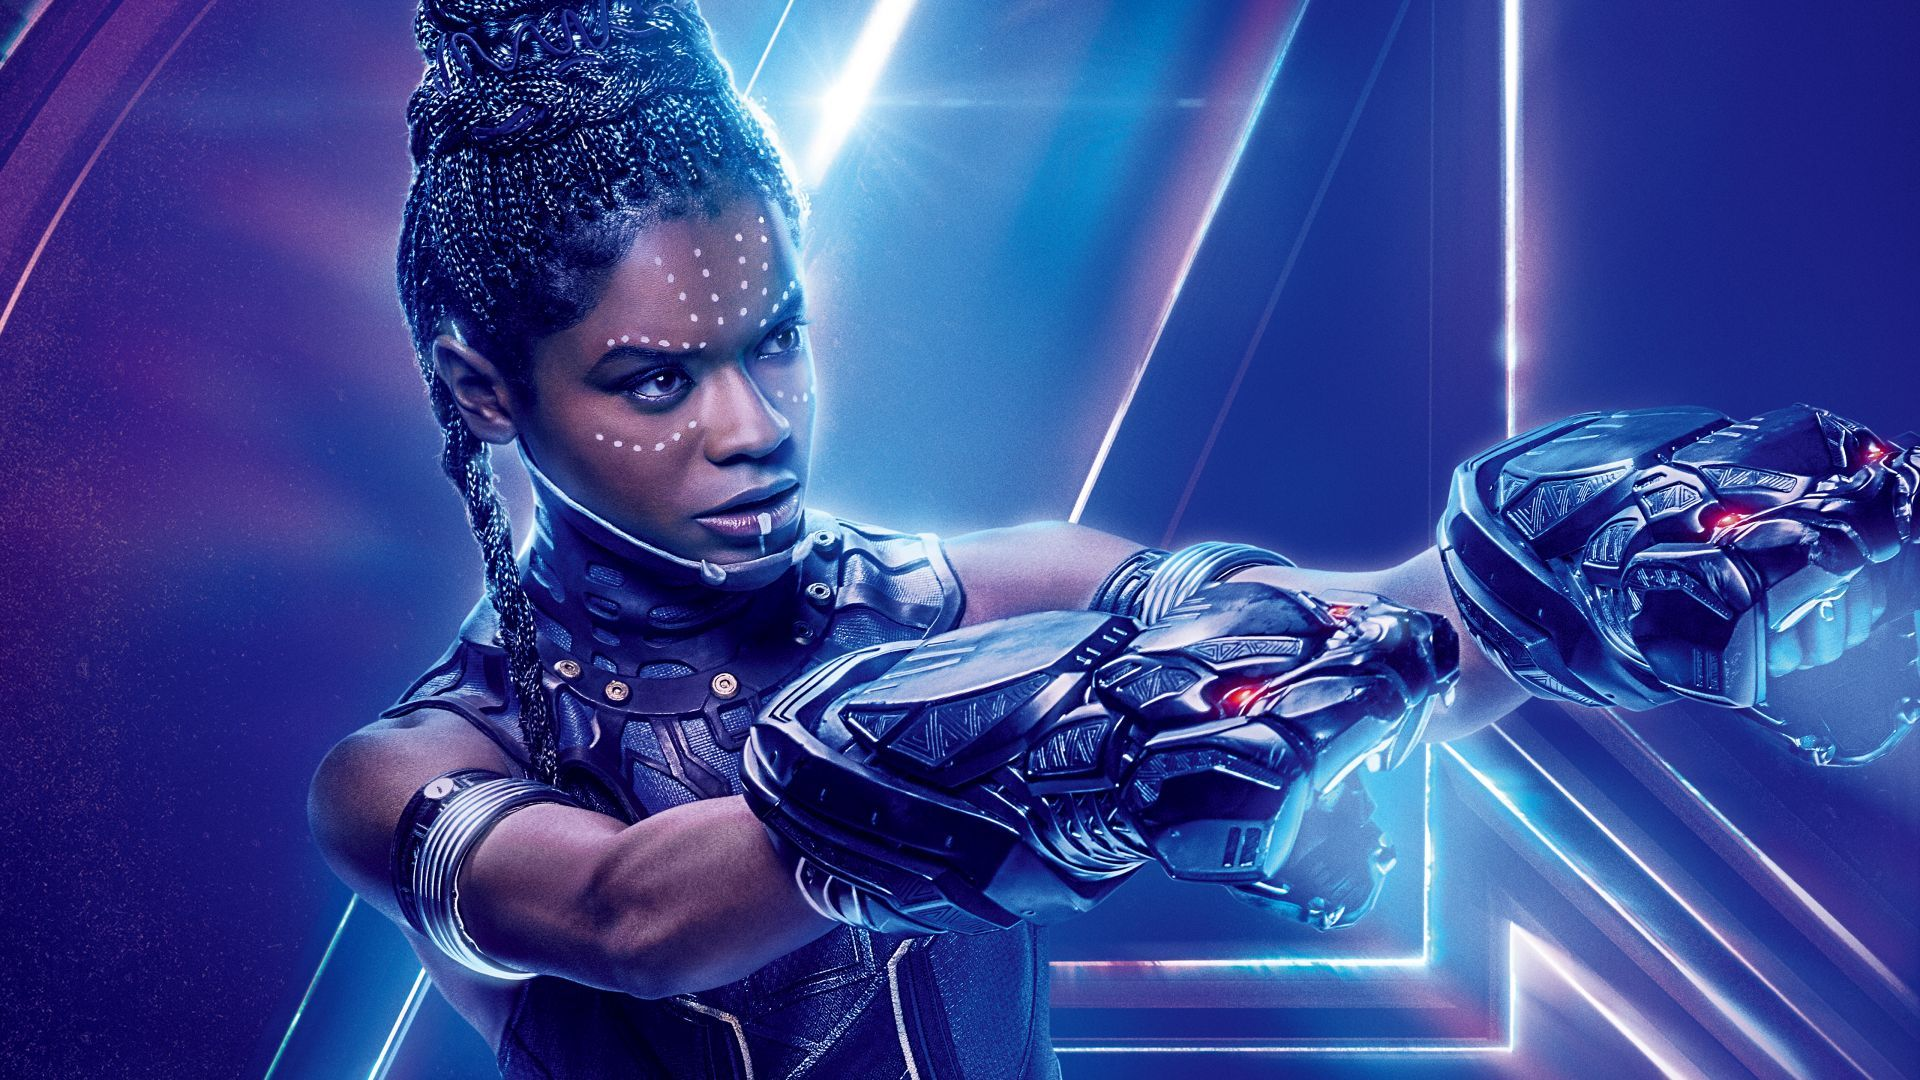 Download Wallpapers Of Avengers Infinity War Letitia Wright Shuri